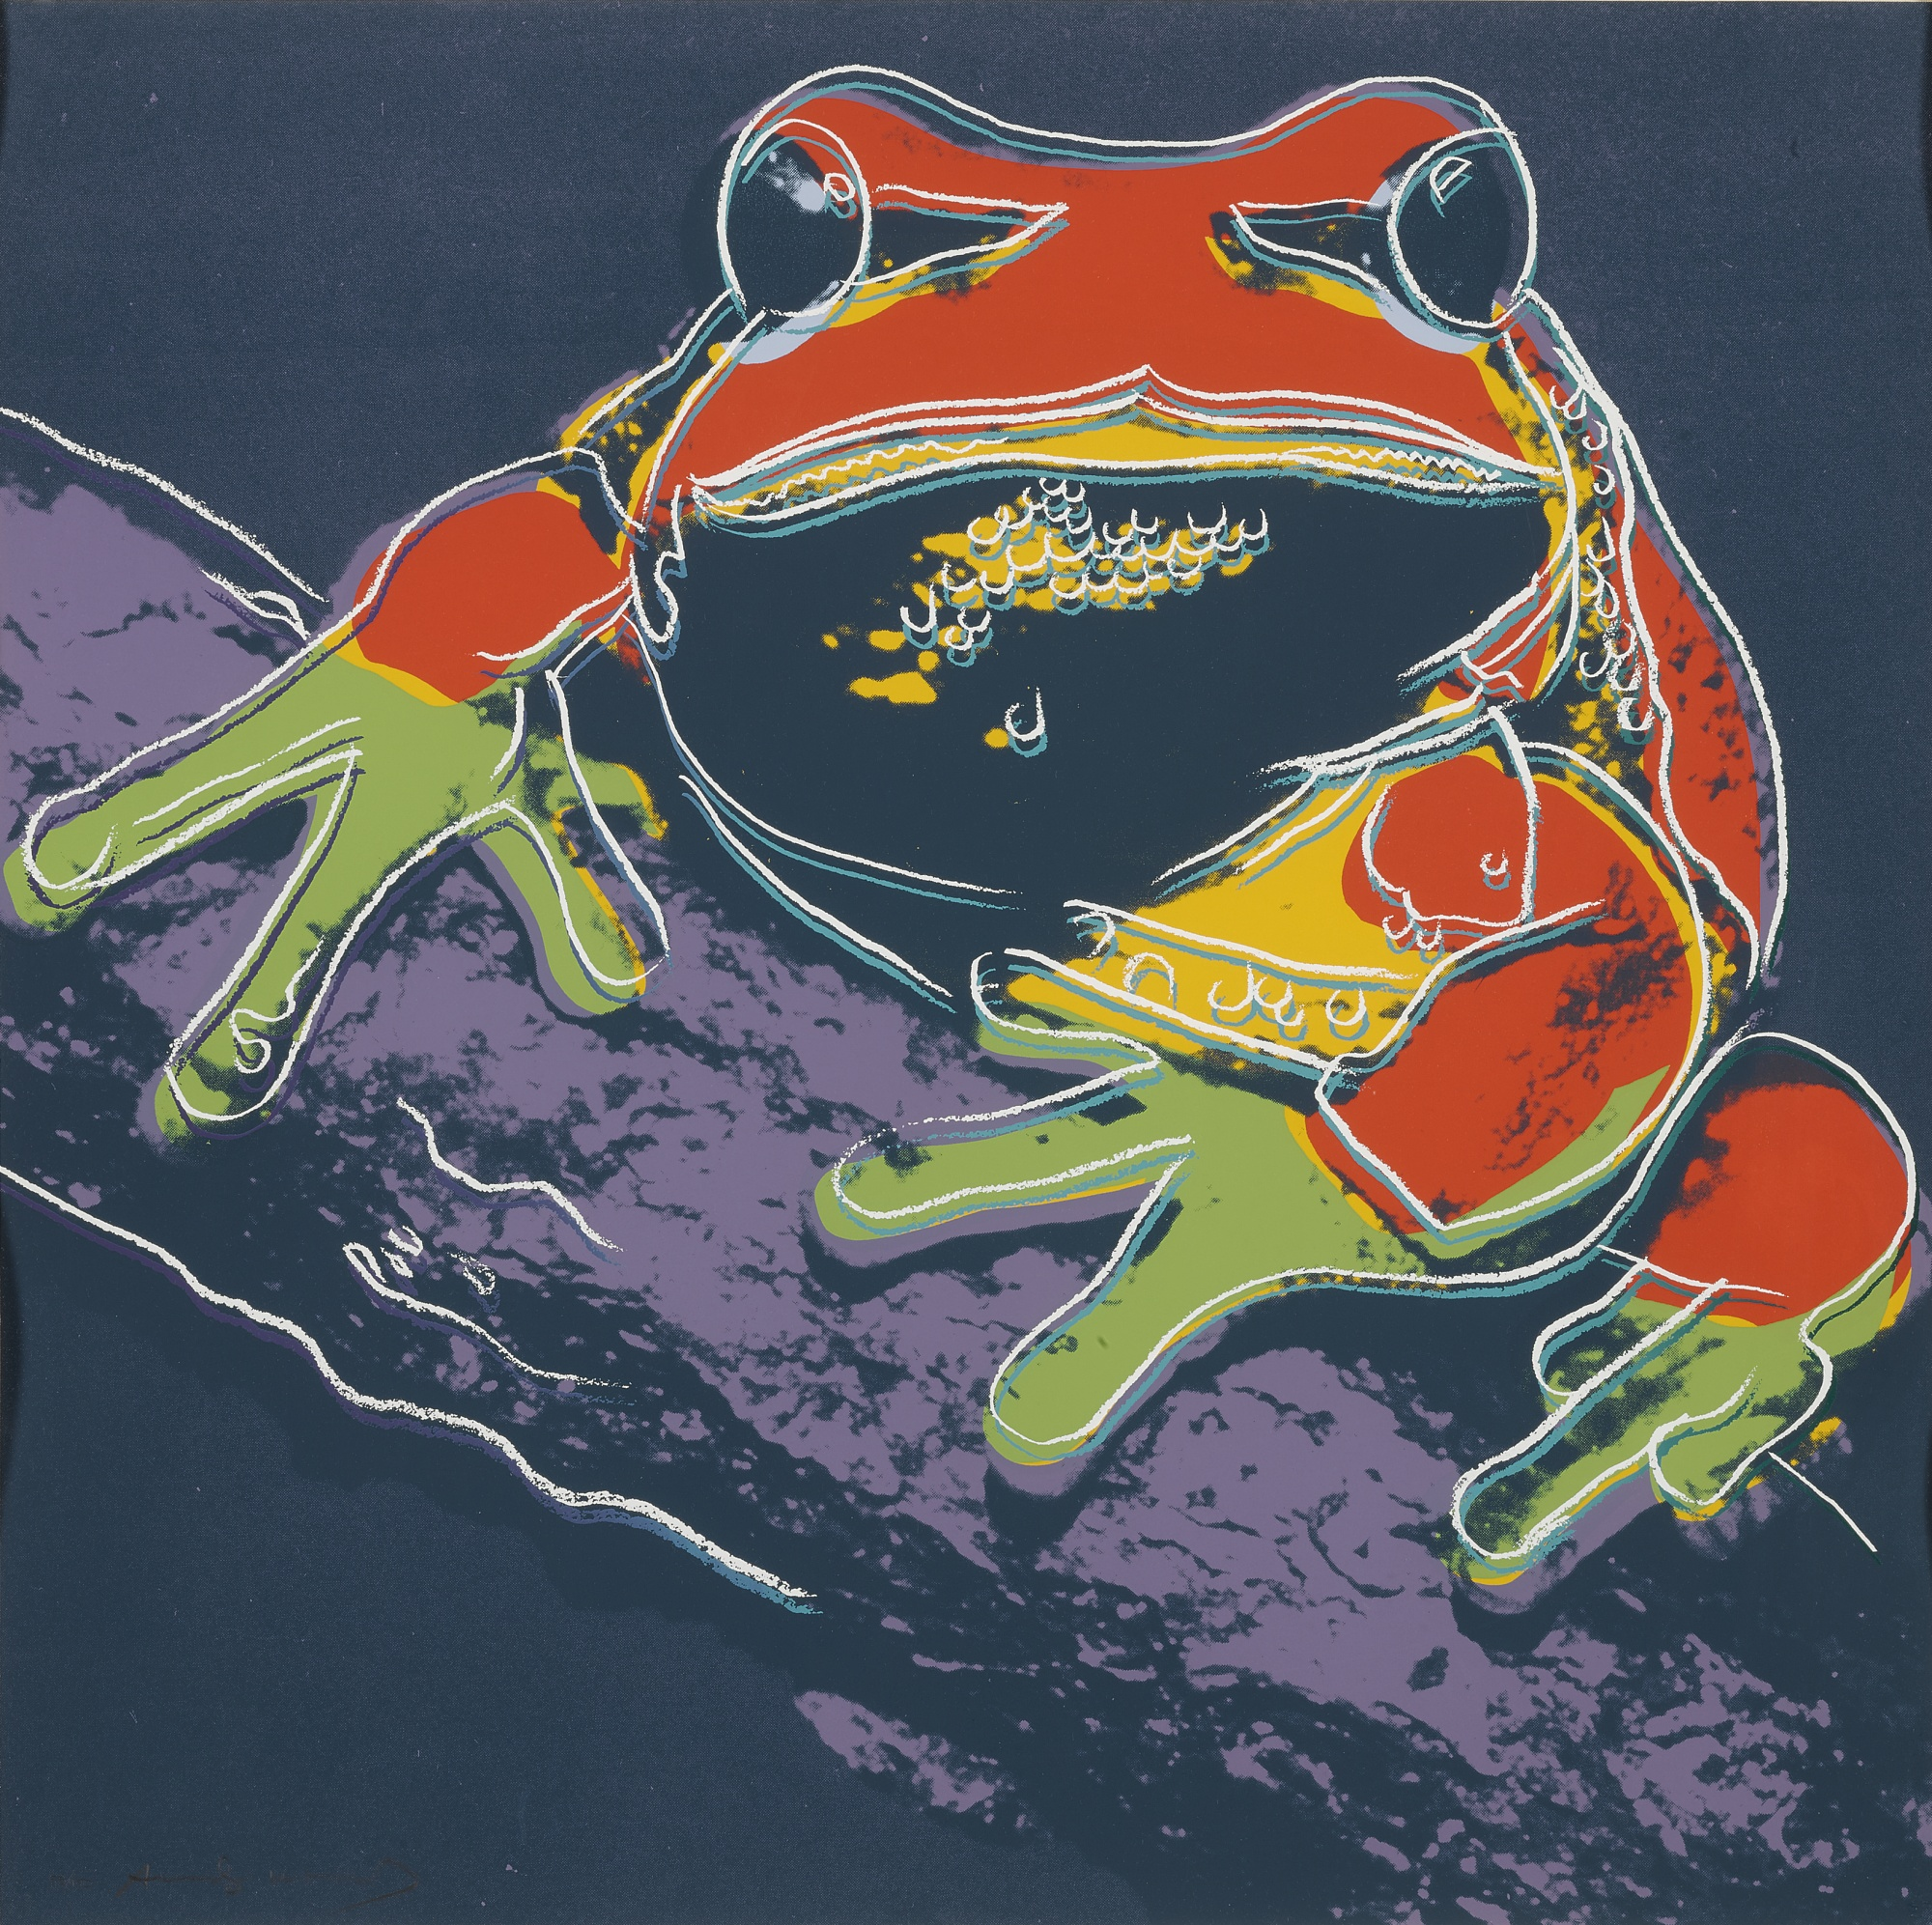 Andy Warhol-Pine Barrens Tree Frog (F. & S. II.294)-1983